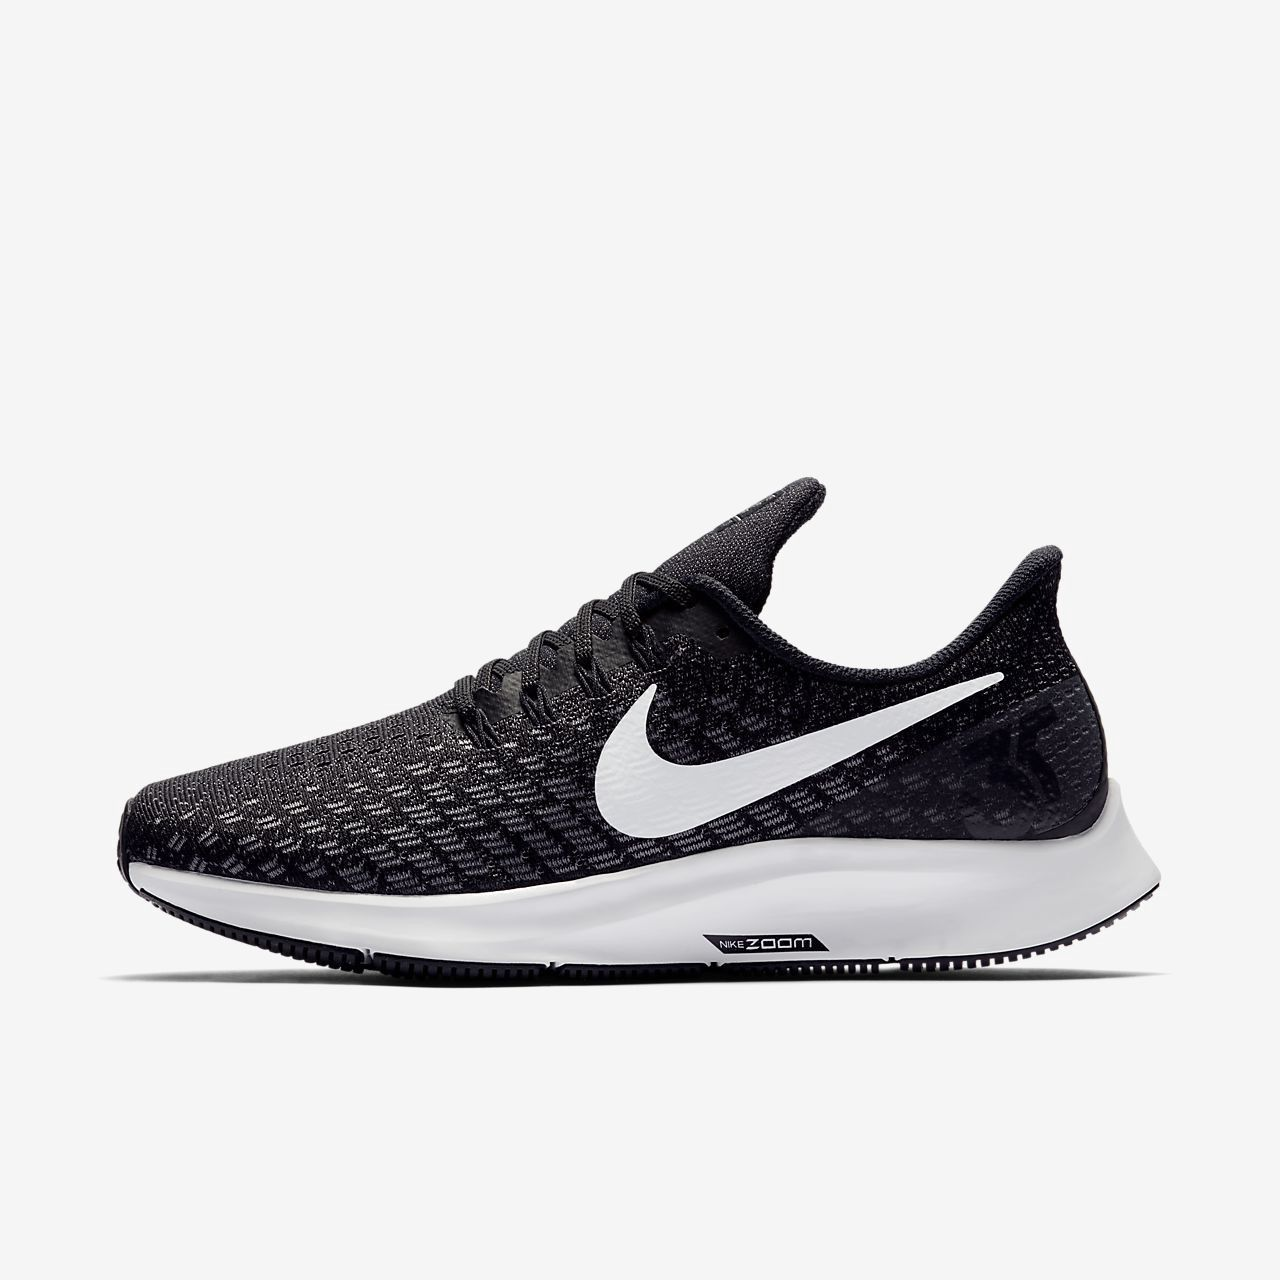 Men's Fitness Shoes : cheap sport shoes,nike running,adidas